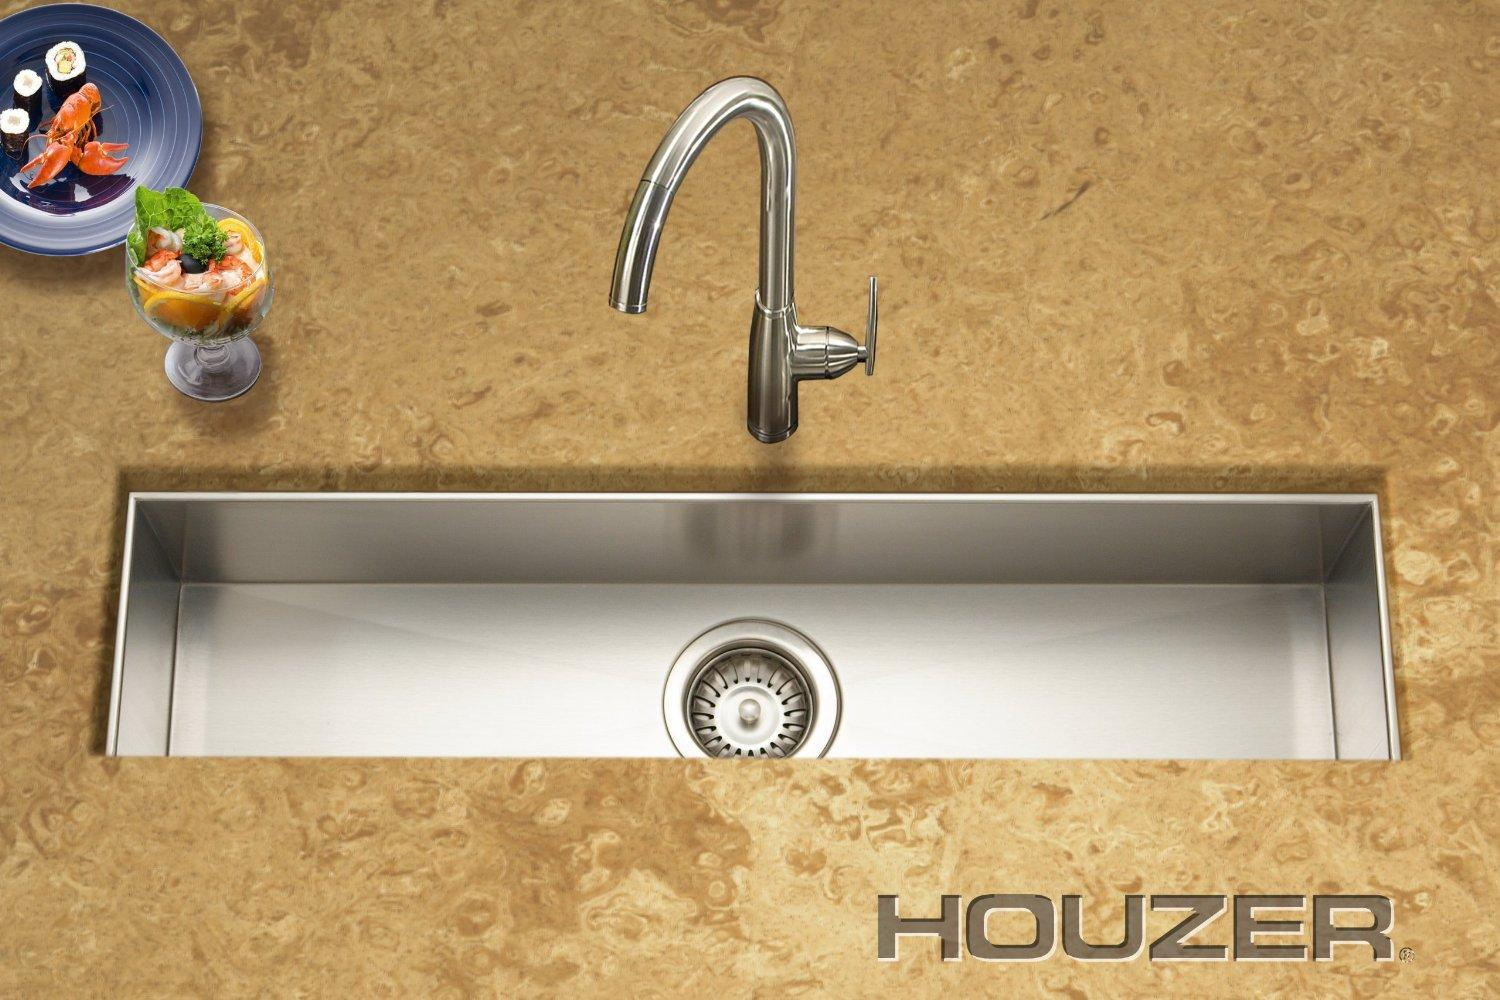 Trough Sink Manufacturers : ... Steel Trough Bar or Prep Sink, 30-by-6-1/2-Inch - - Amazon.com